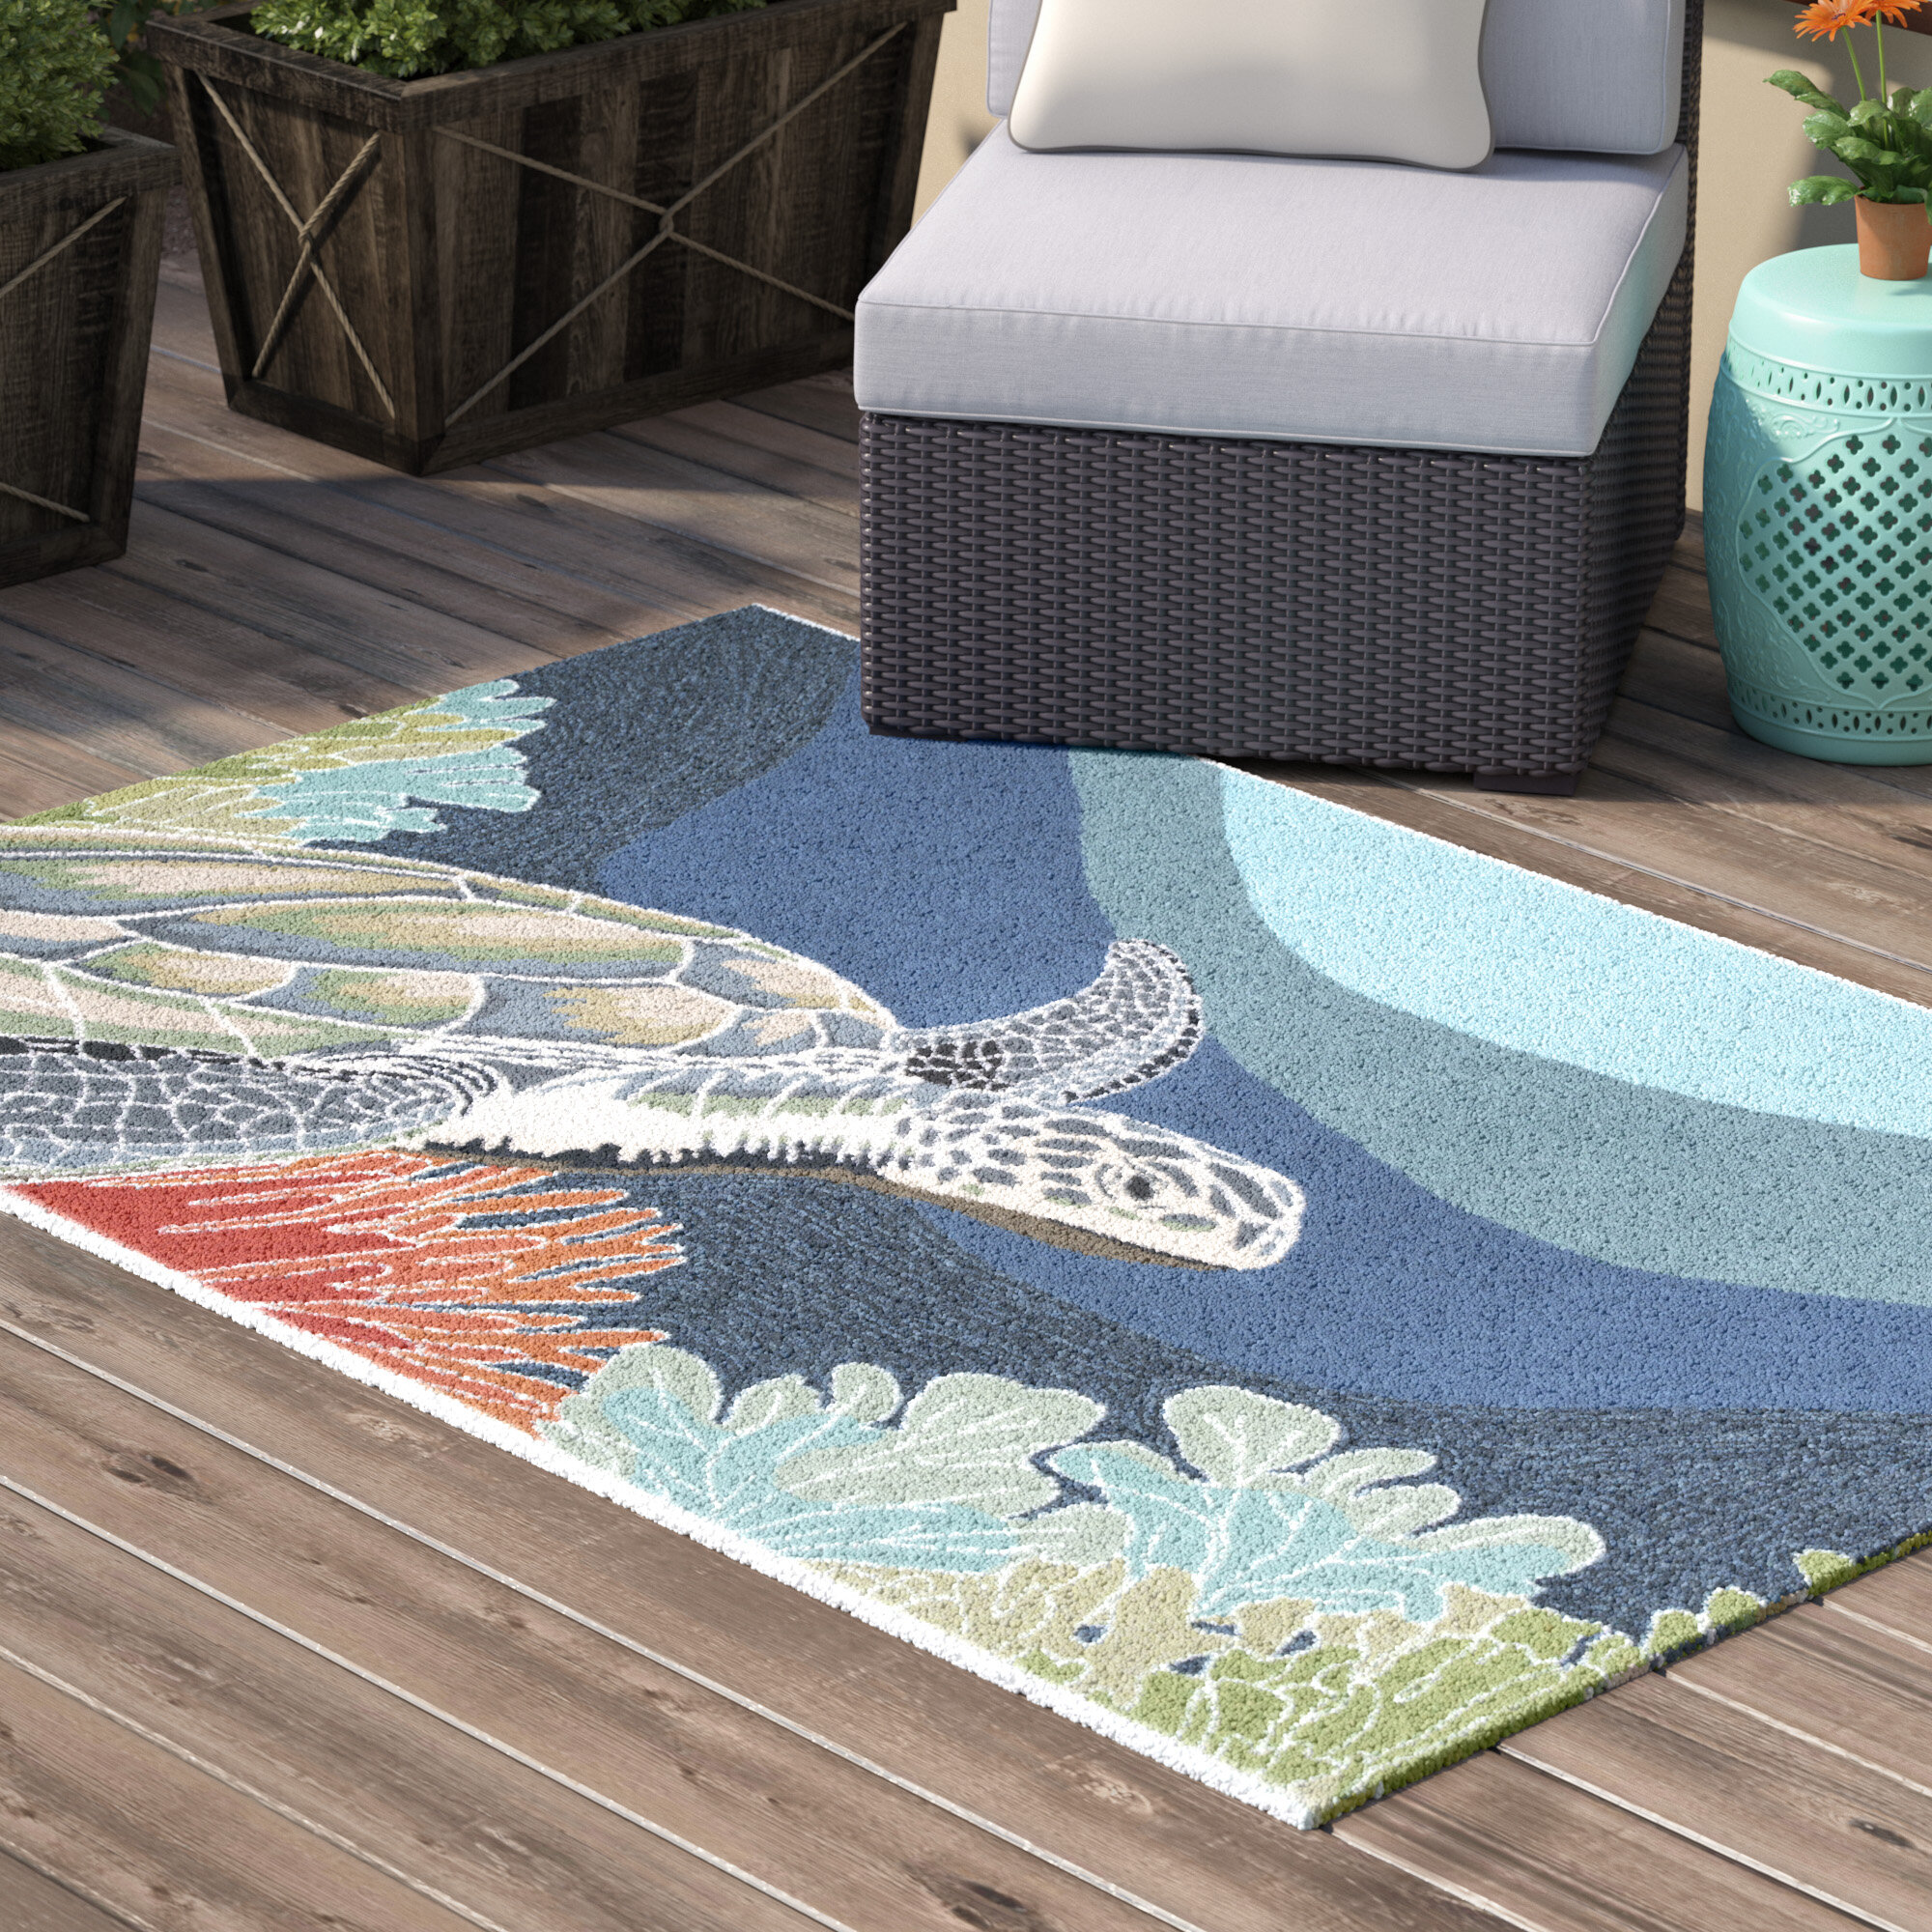 crocodile rugs colorado area themed design alligator vine doors barn salary nautical houston interior rug